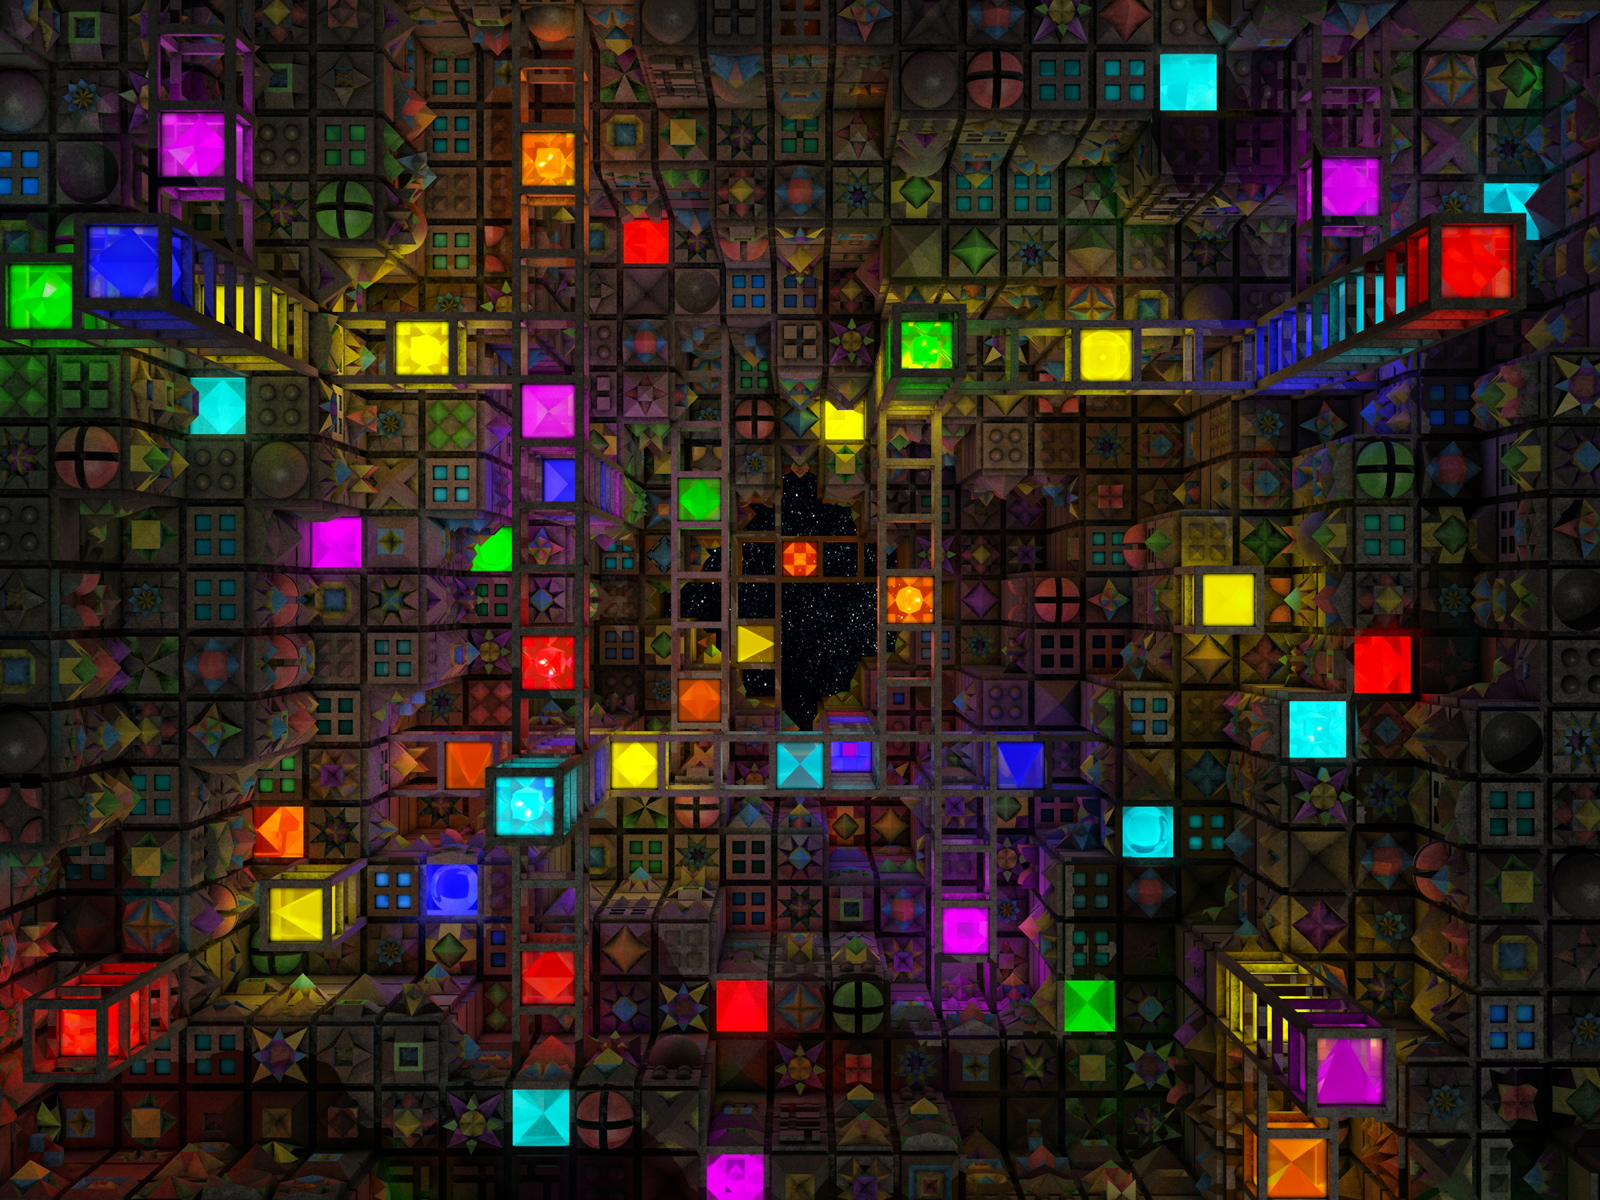 abstract wallpapers amazing wallpapers hd wallpapers wallpapers 2012 1600x1200